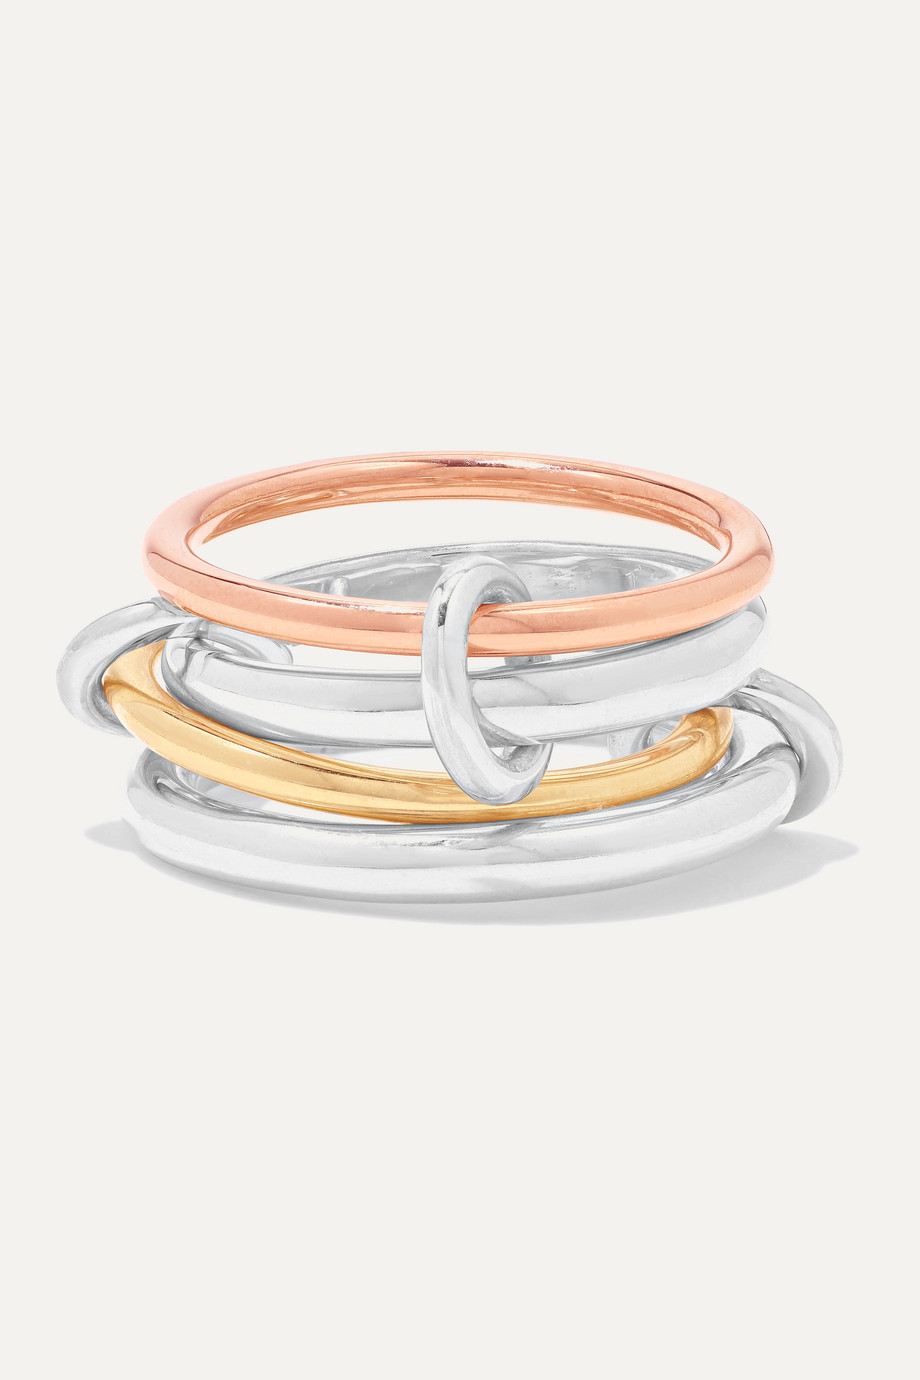 Spinelli Kilcollin Hyacinth set of four 18-karat yellow and rose gold and sterling silver rings